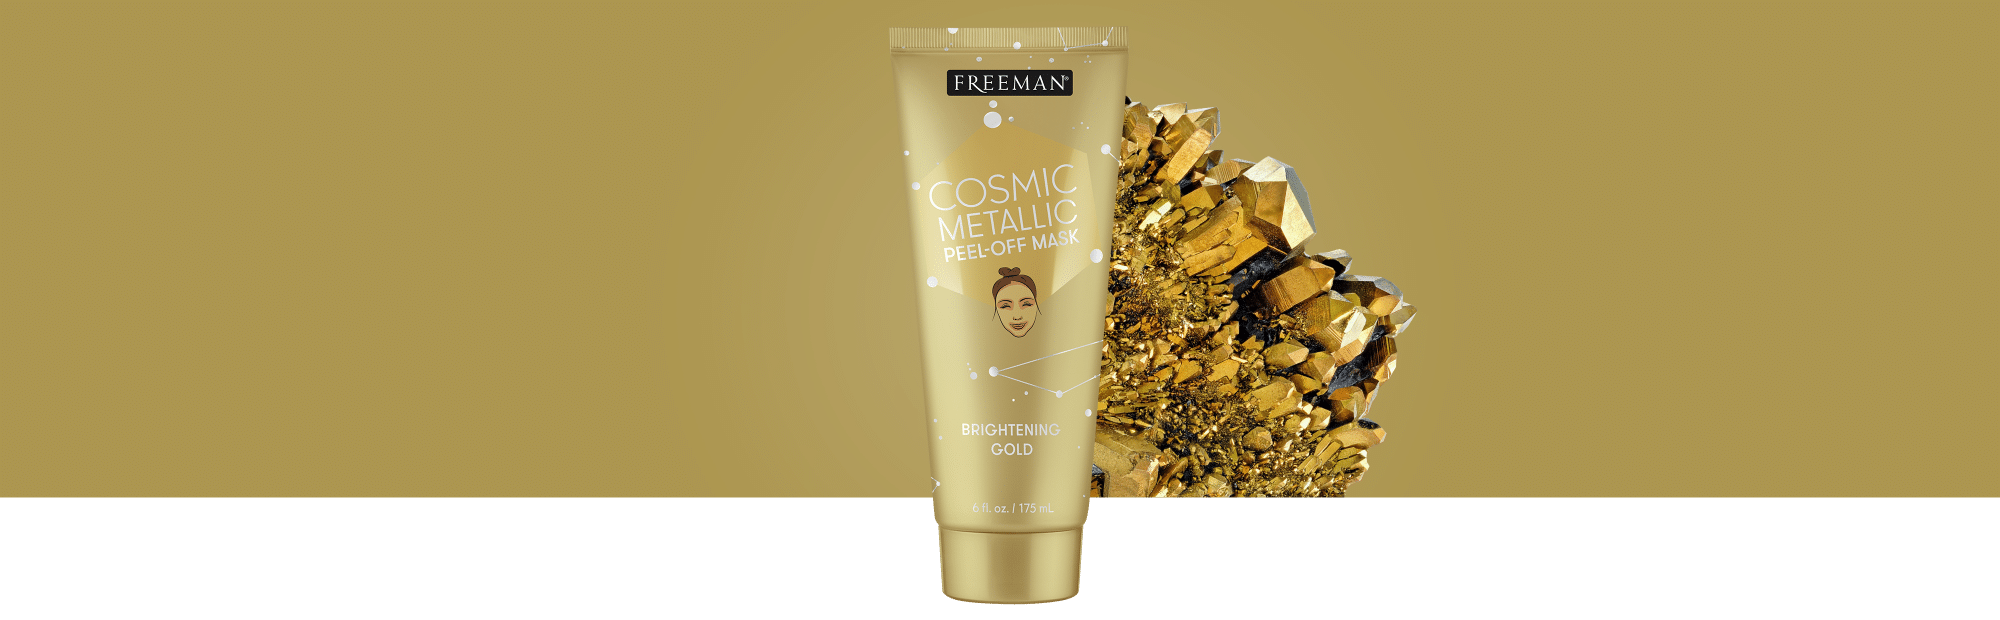 Freeman's - Metallic Peel-Off Mask